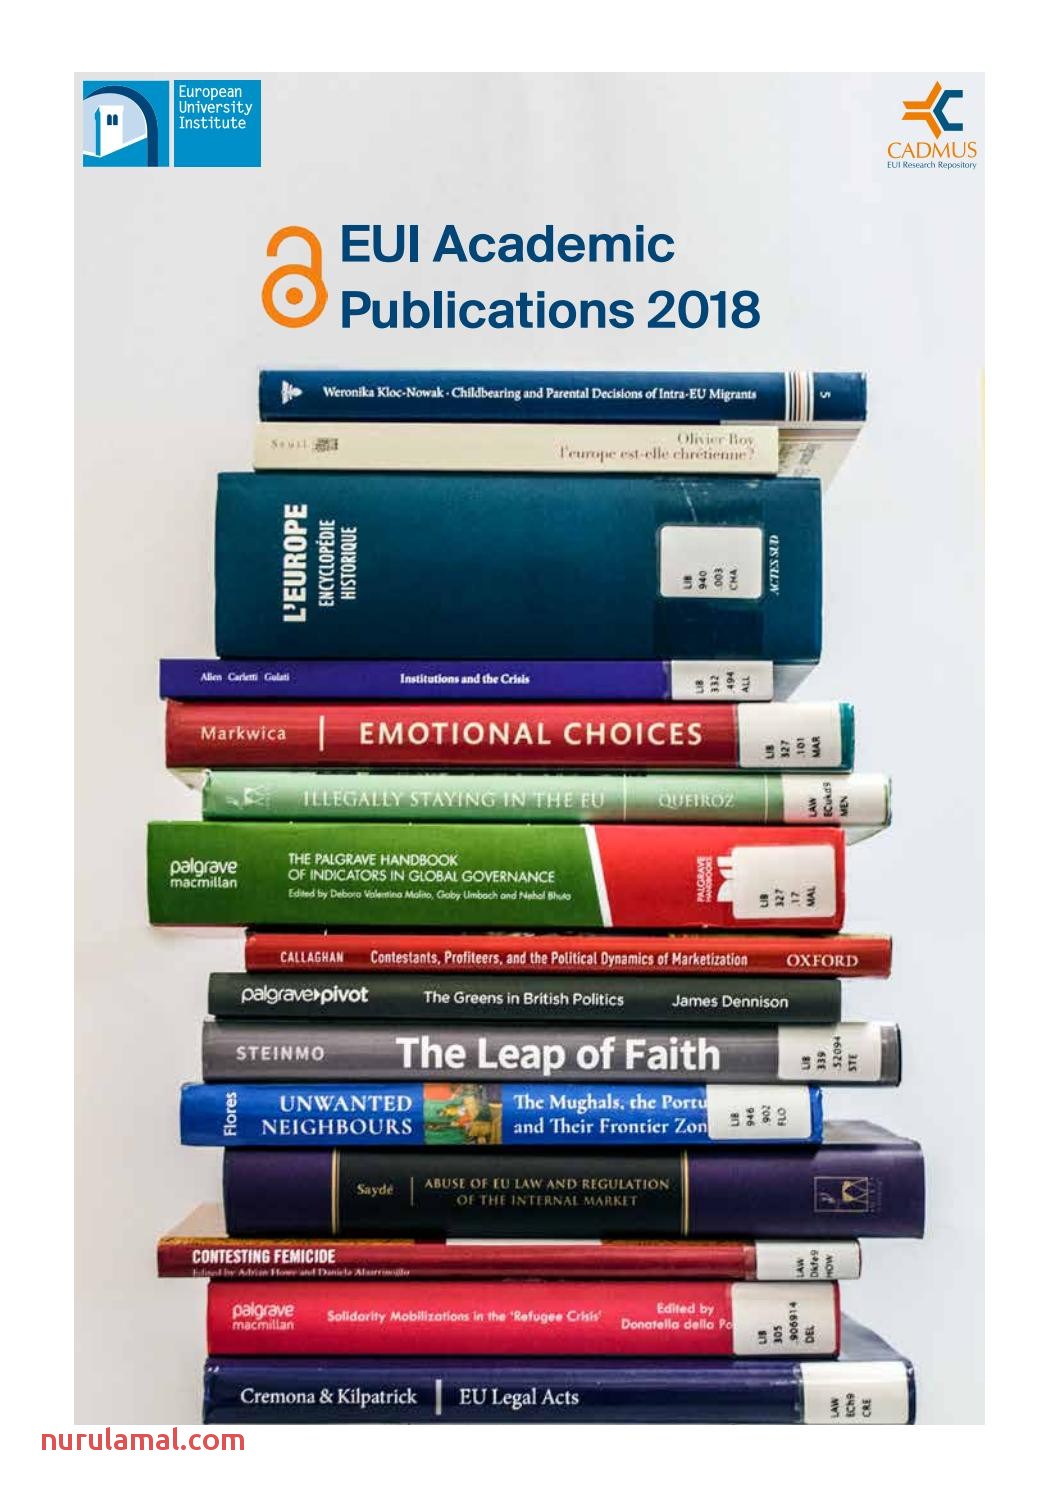 Eui Academic Publications 2018 by European University